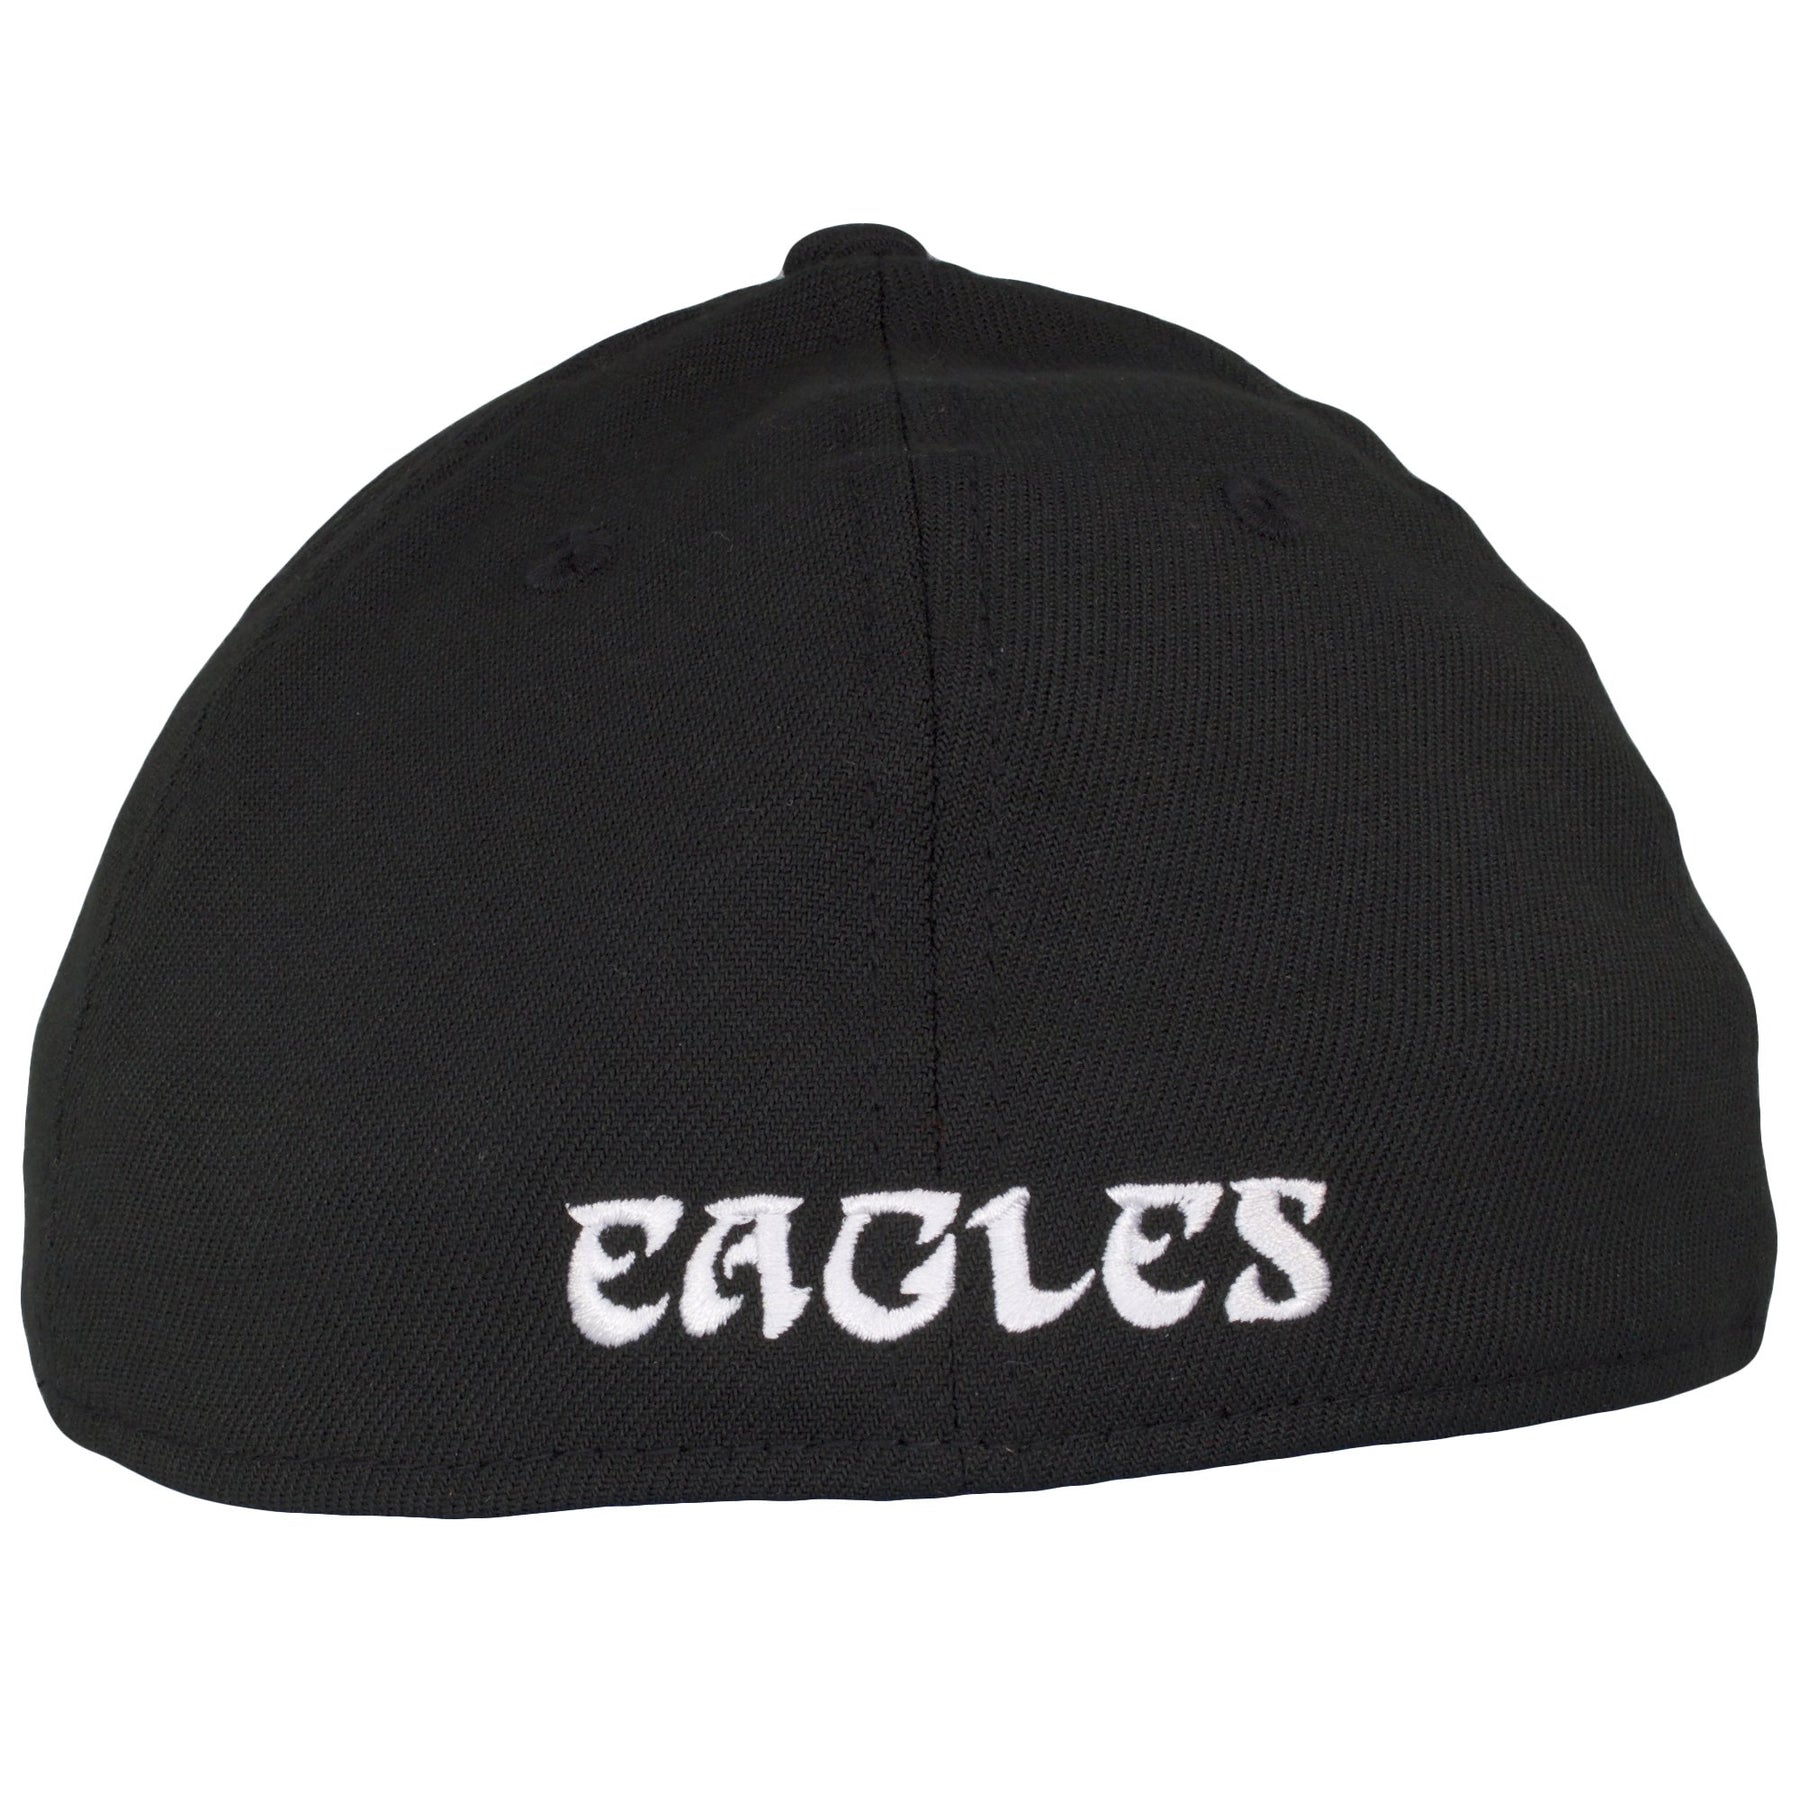 875203a9cc864 ... on the back of the Philadelphia Eagles stretch fit cap is the Eagles  wordmark embroidered in ...